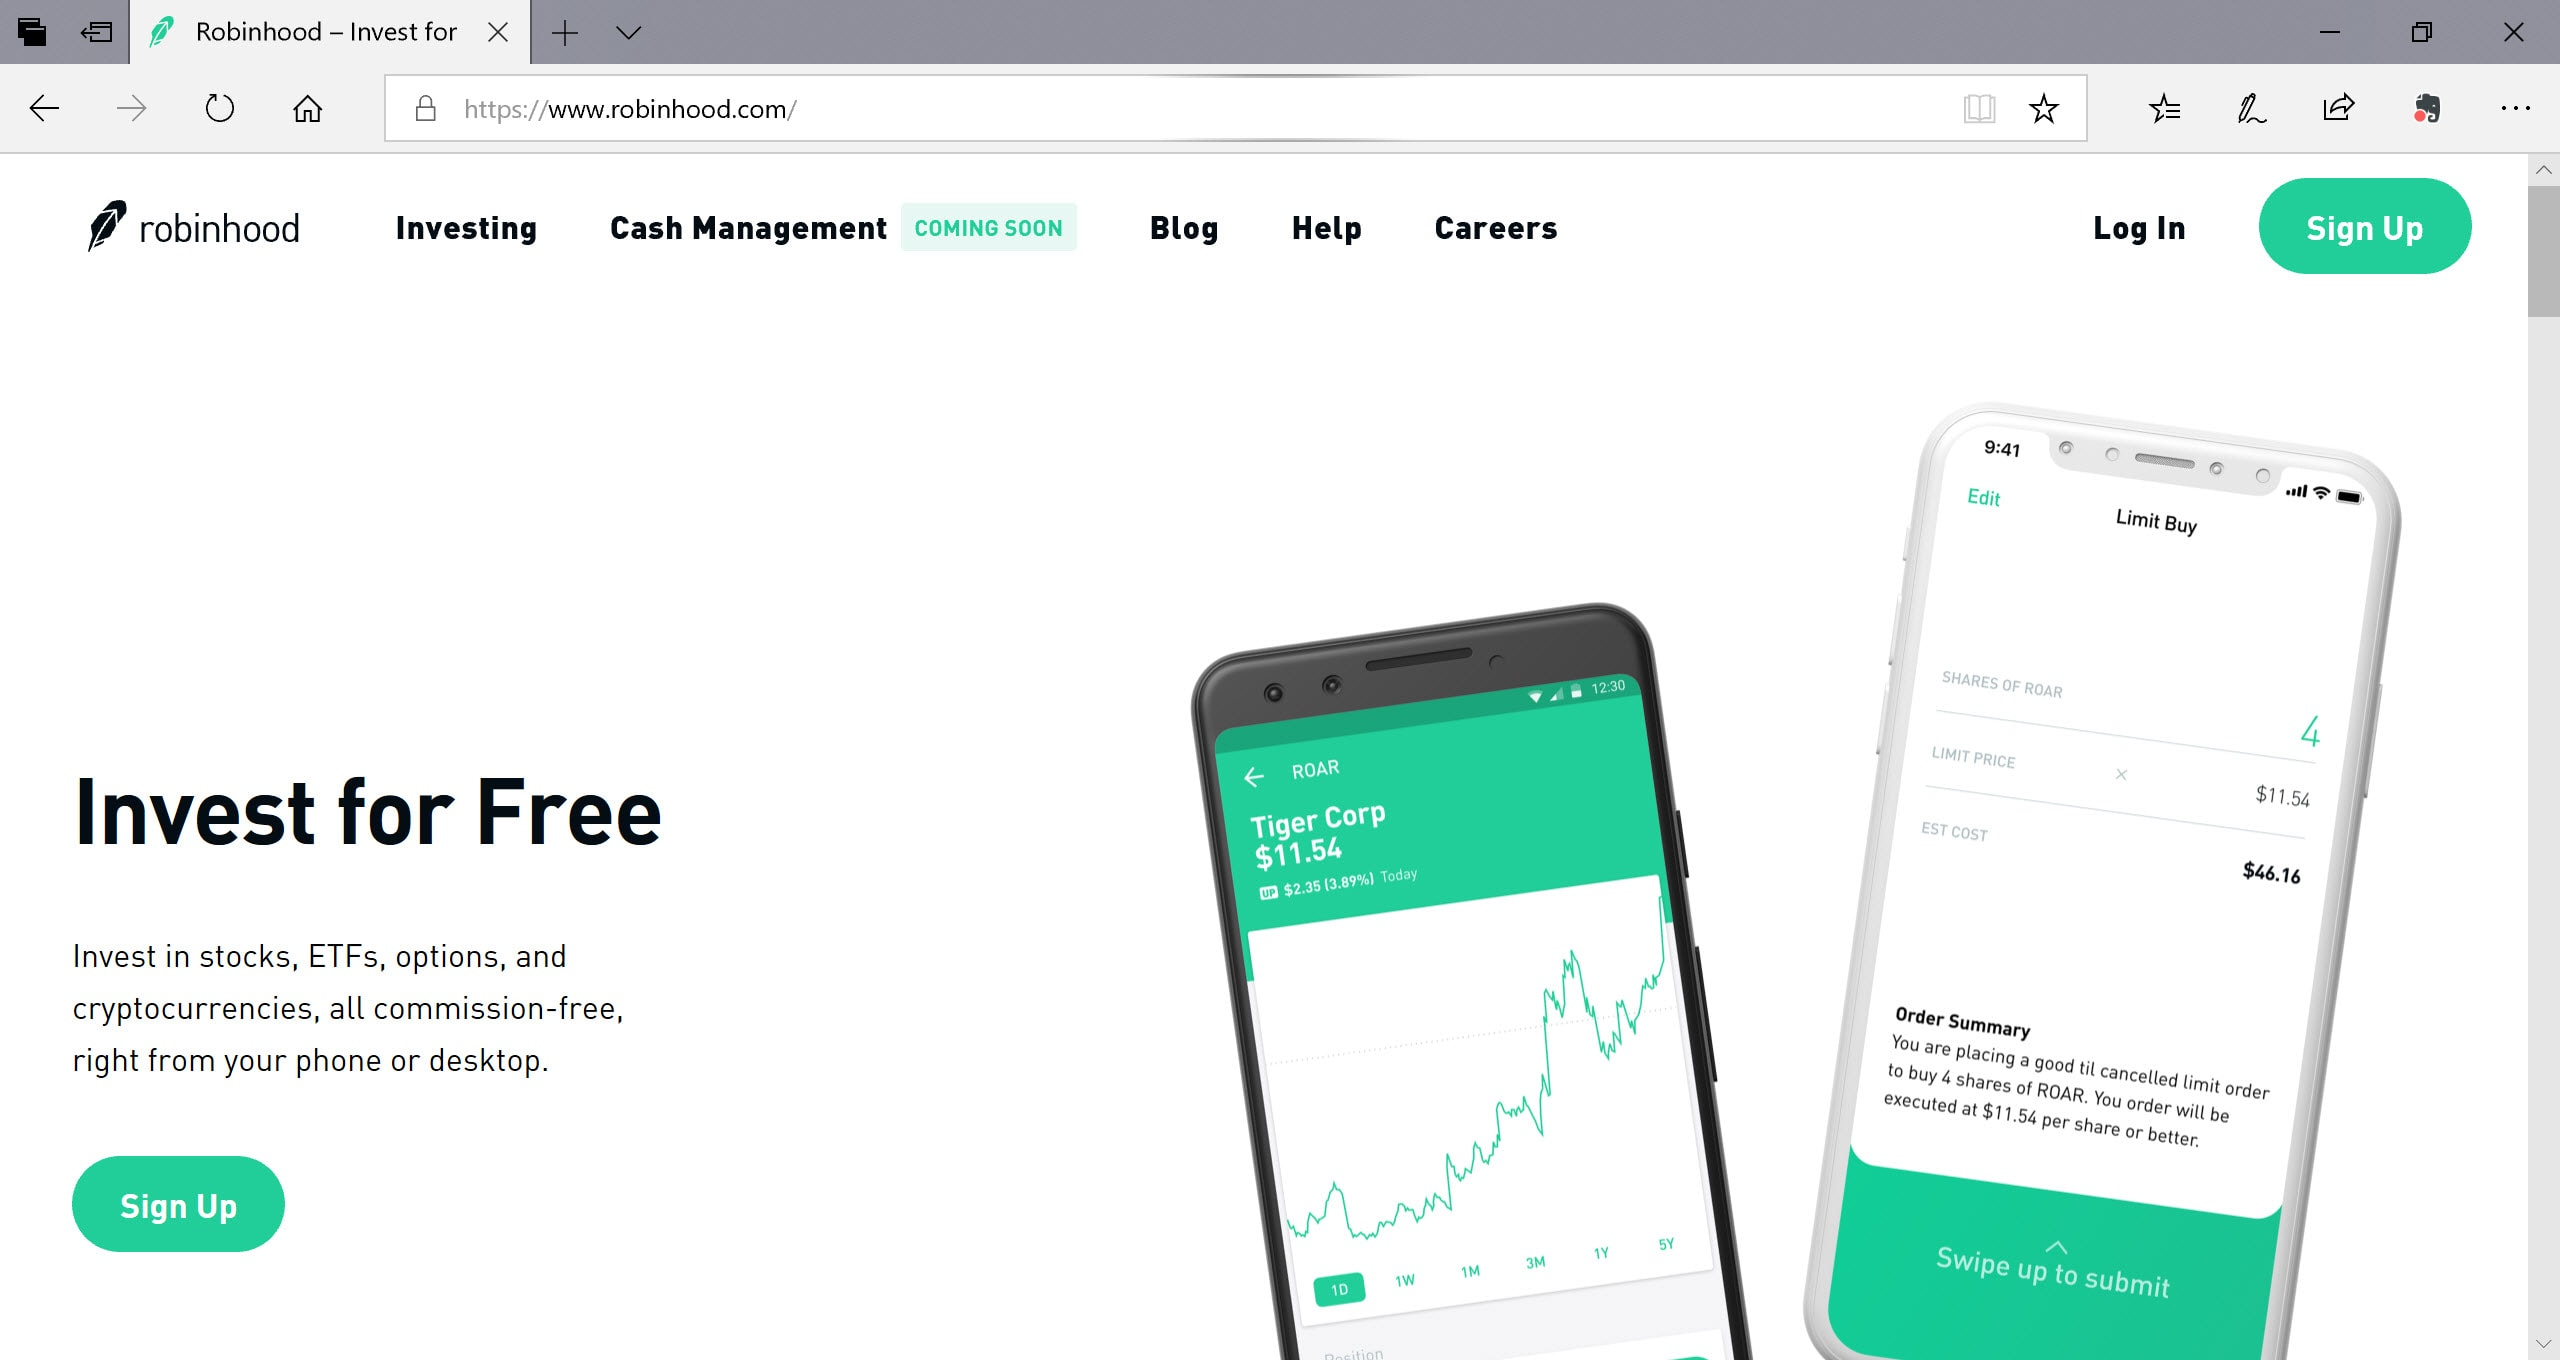 For Under 400 Robinhood